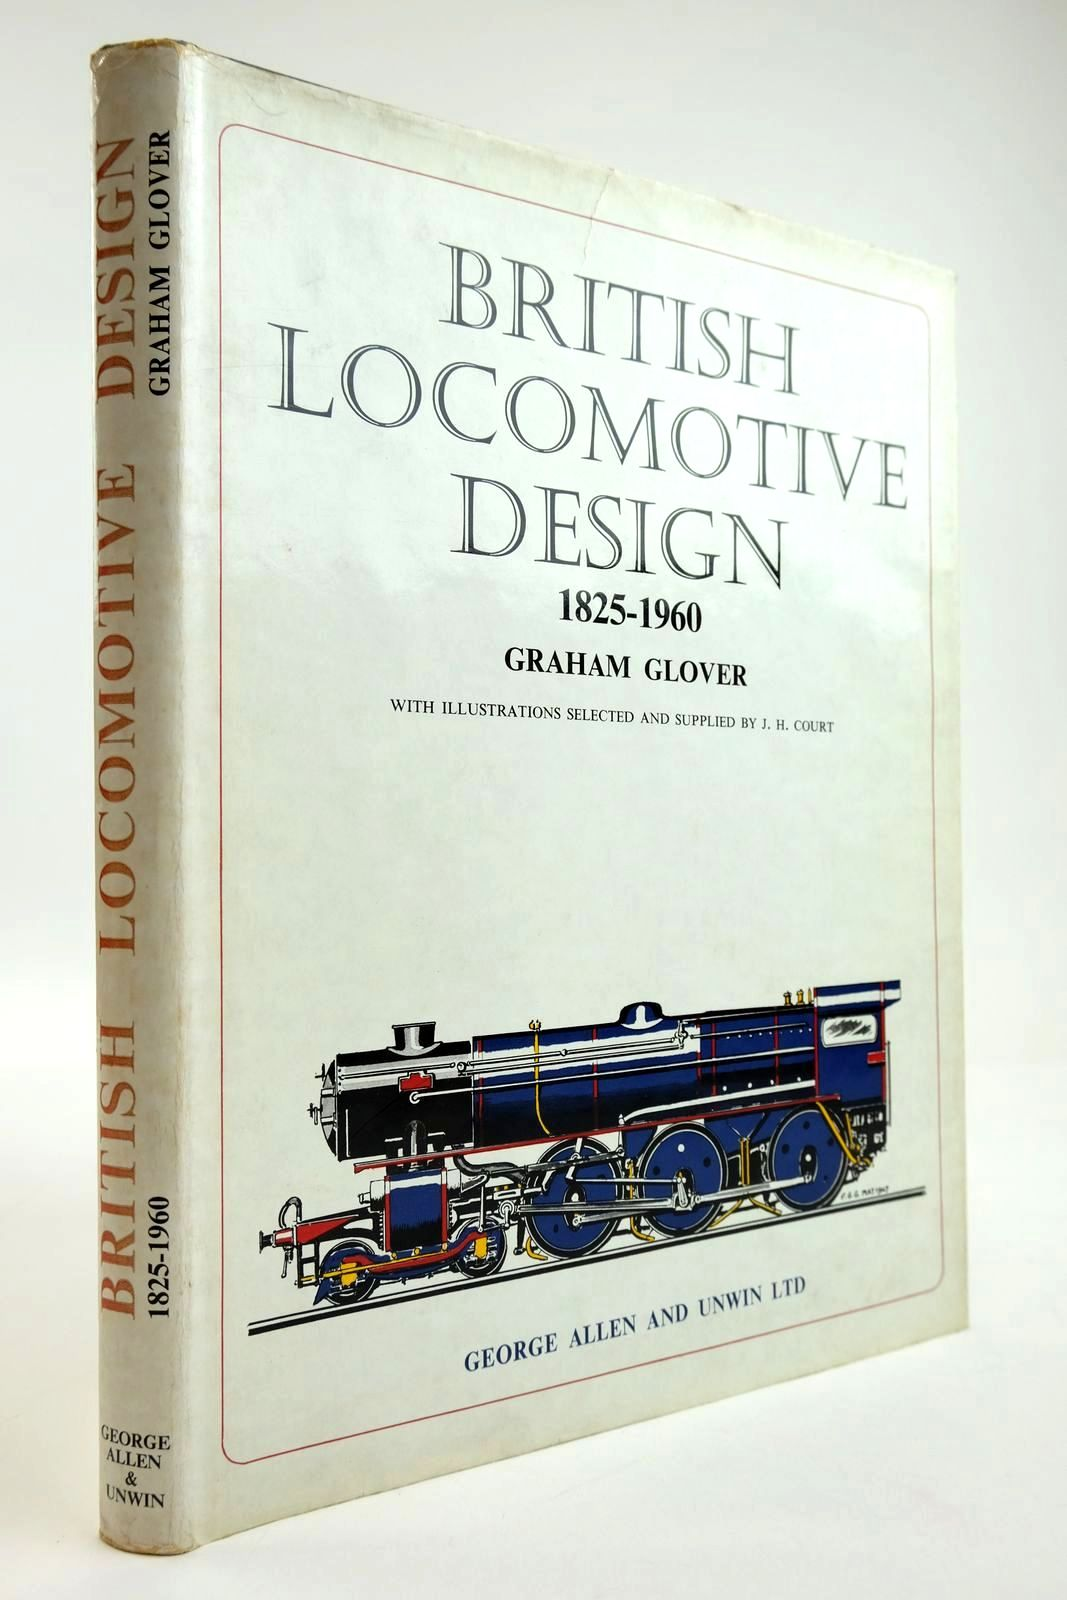 Photo of BRITISH LOCOMOTIVE DESIGN 1825-1960 written by Glove, Graham illustrated by Court, J.H. published by George Allen & Unwin Ltd. (STOCK CODE: 2133786)  for sale by Stella & Rose's Books